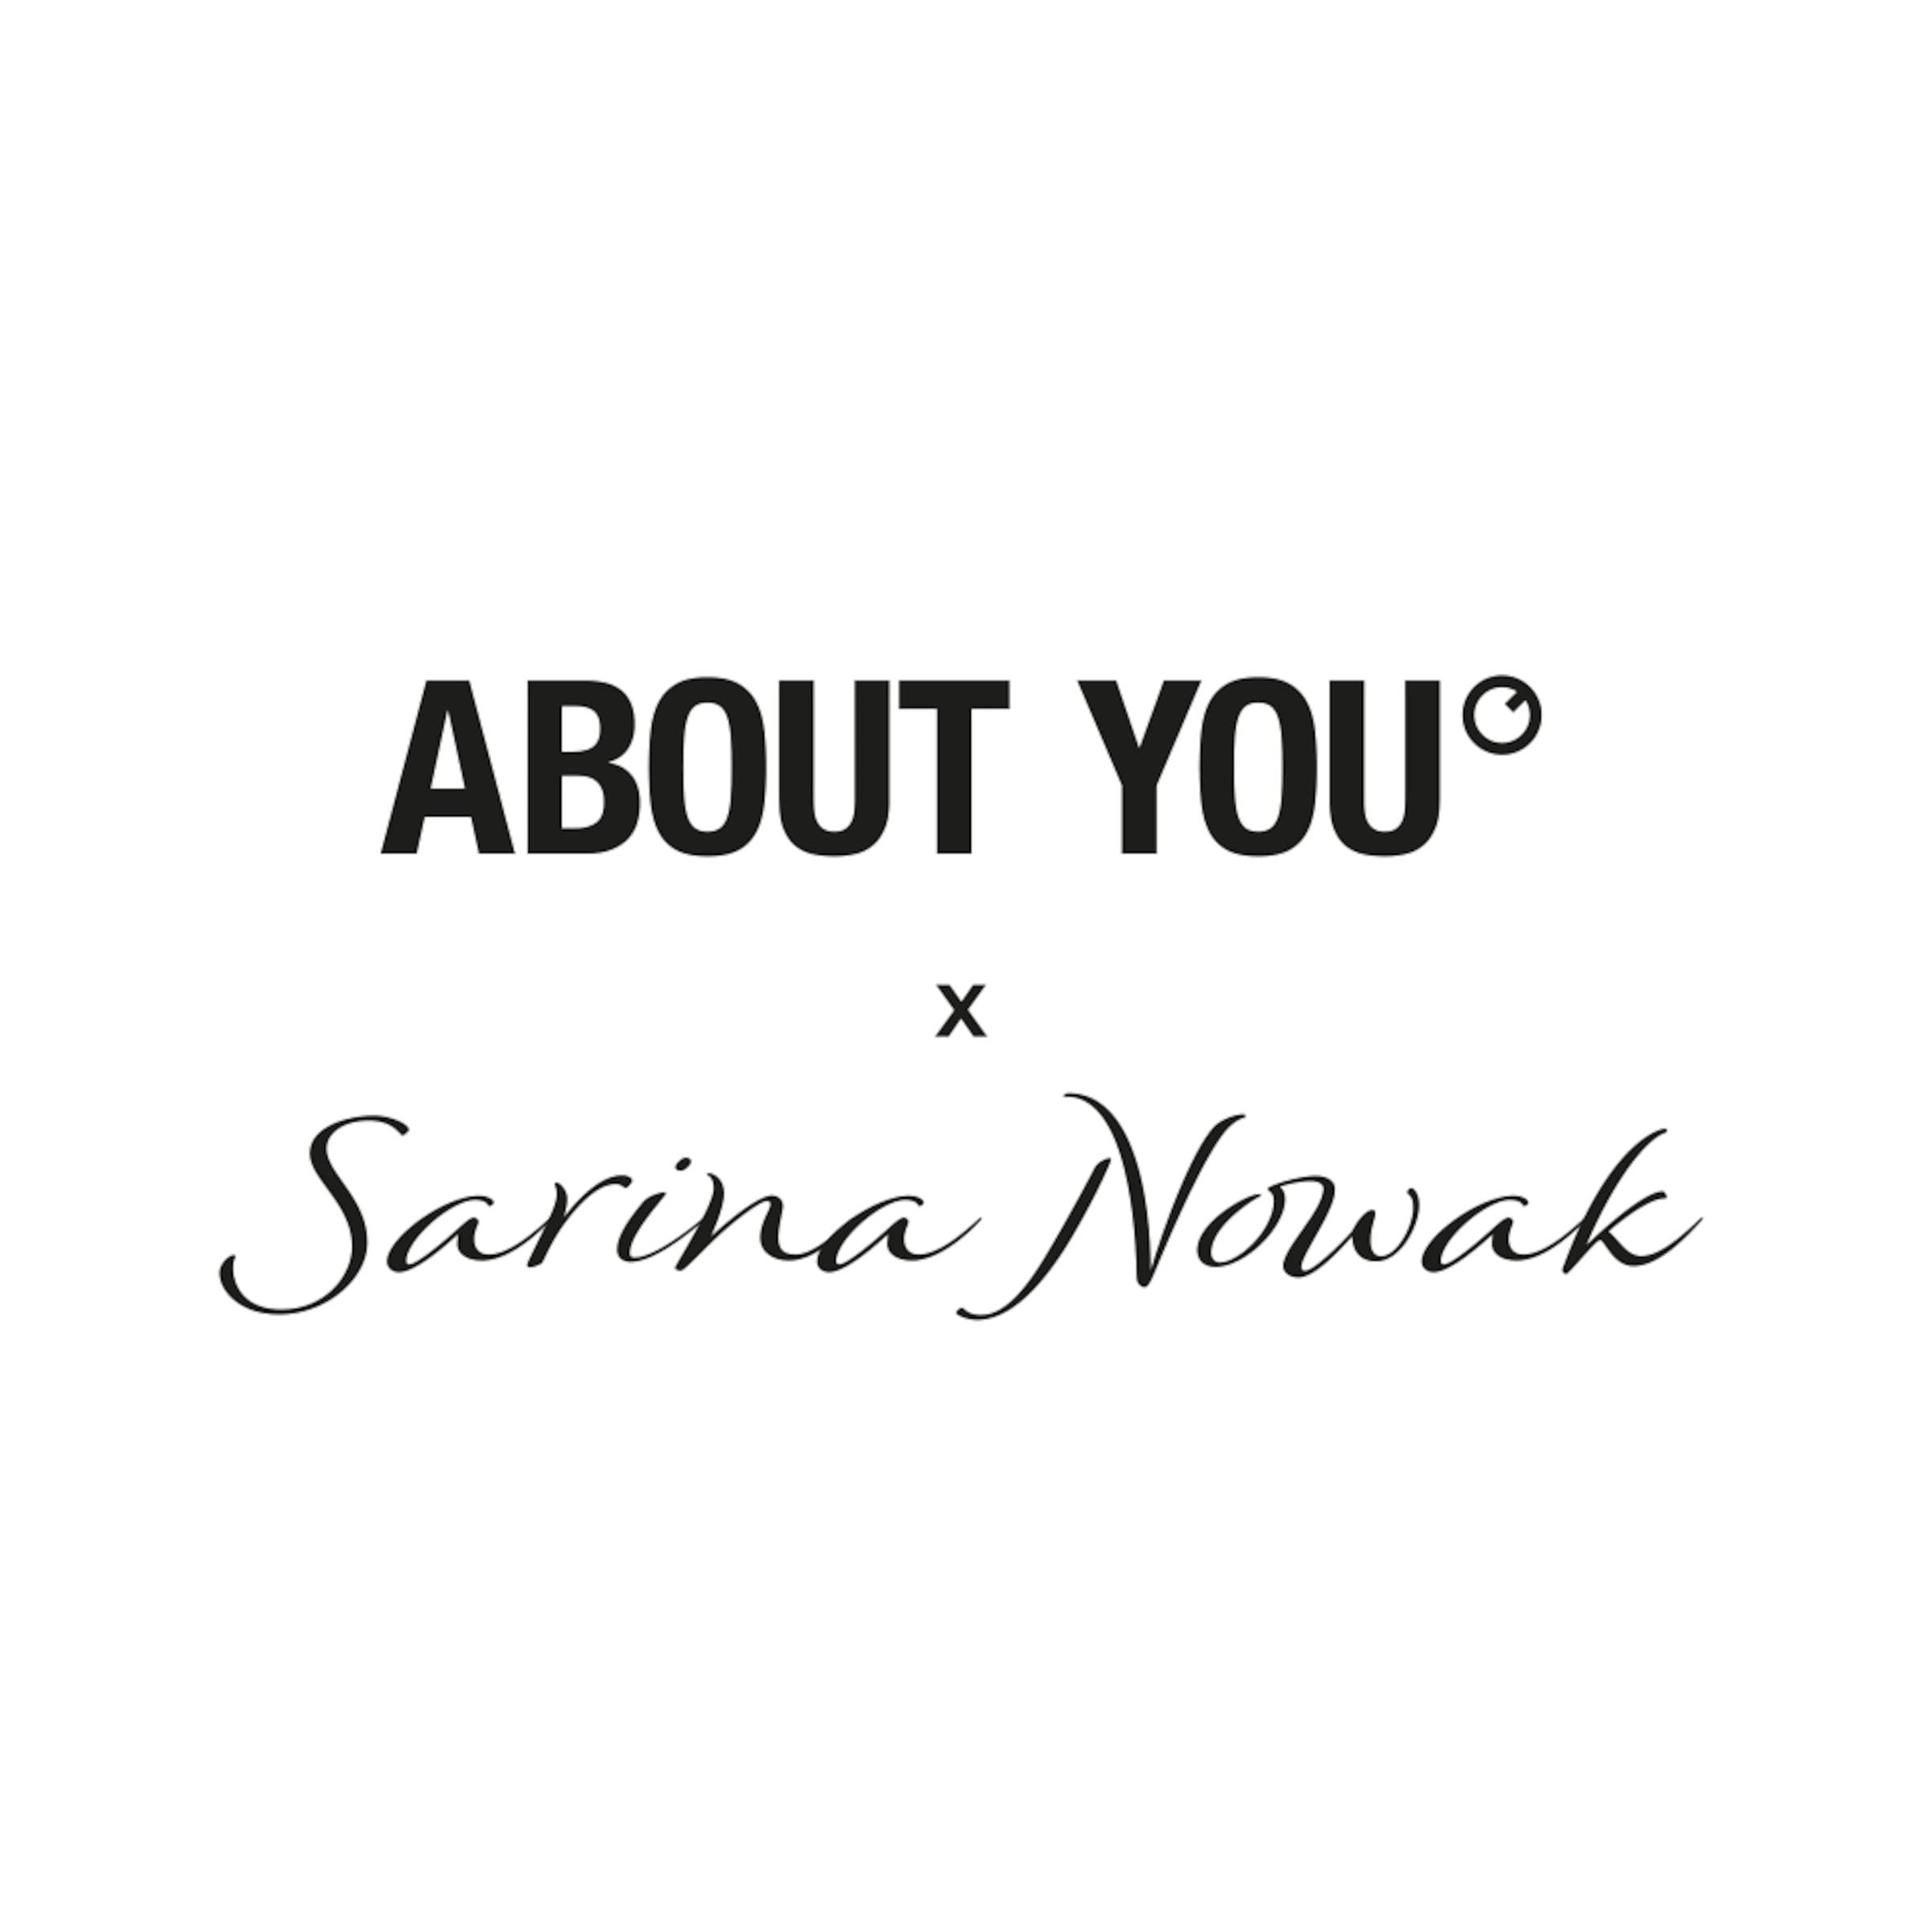 ABOUT YOU X Sarina Nowak